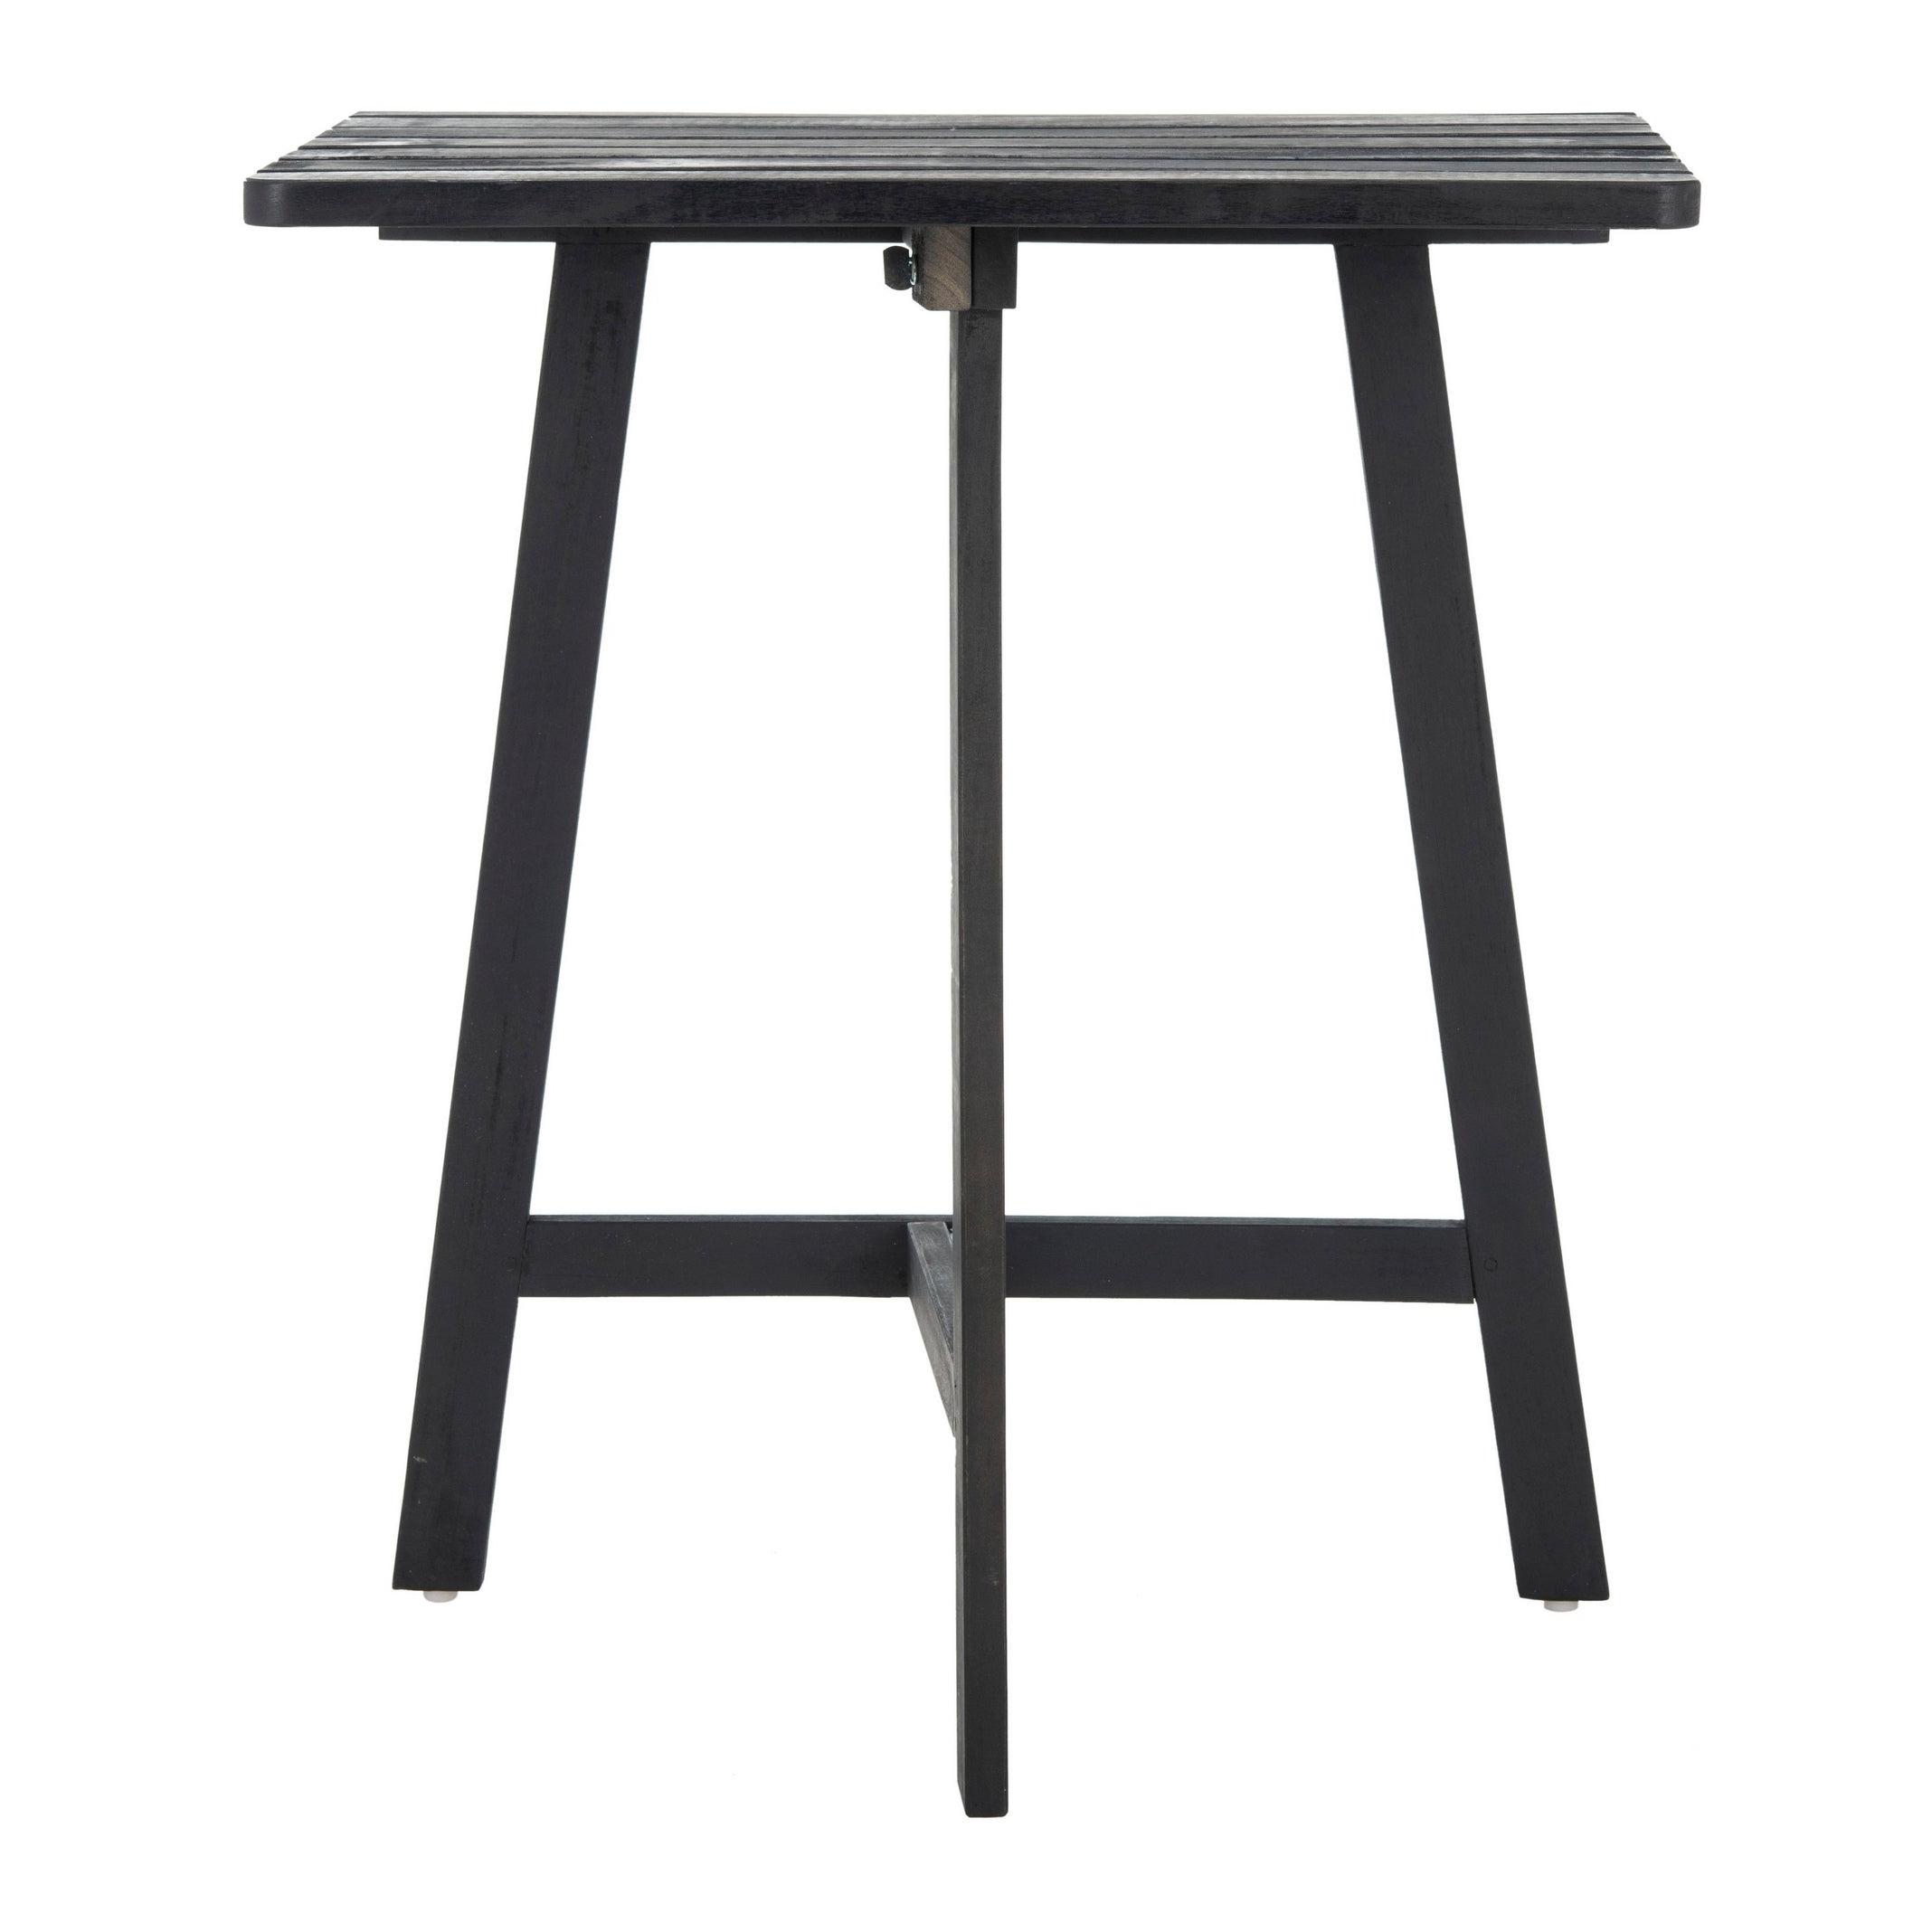 Latest Details About Safavieh Outdoor Living Benton Balcony Table – Dark Slate Dark Slate Gray (View 11 of 25)